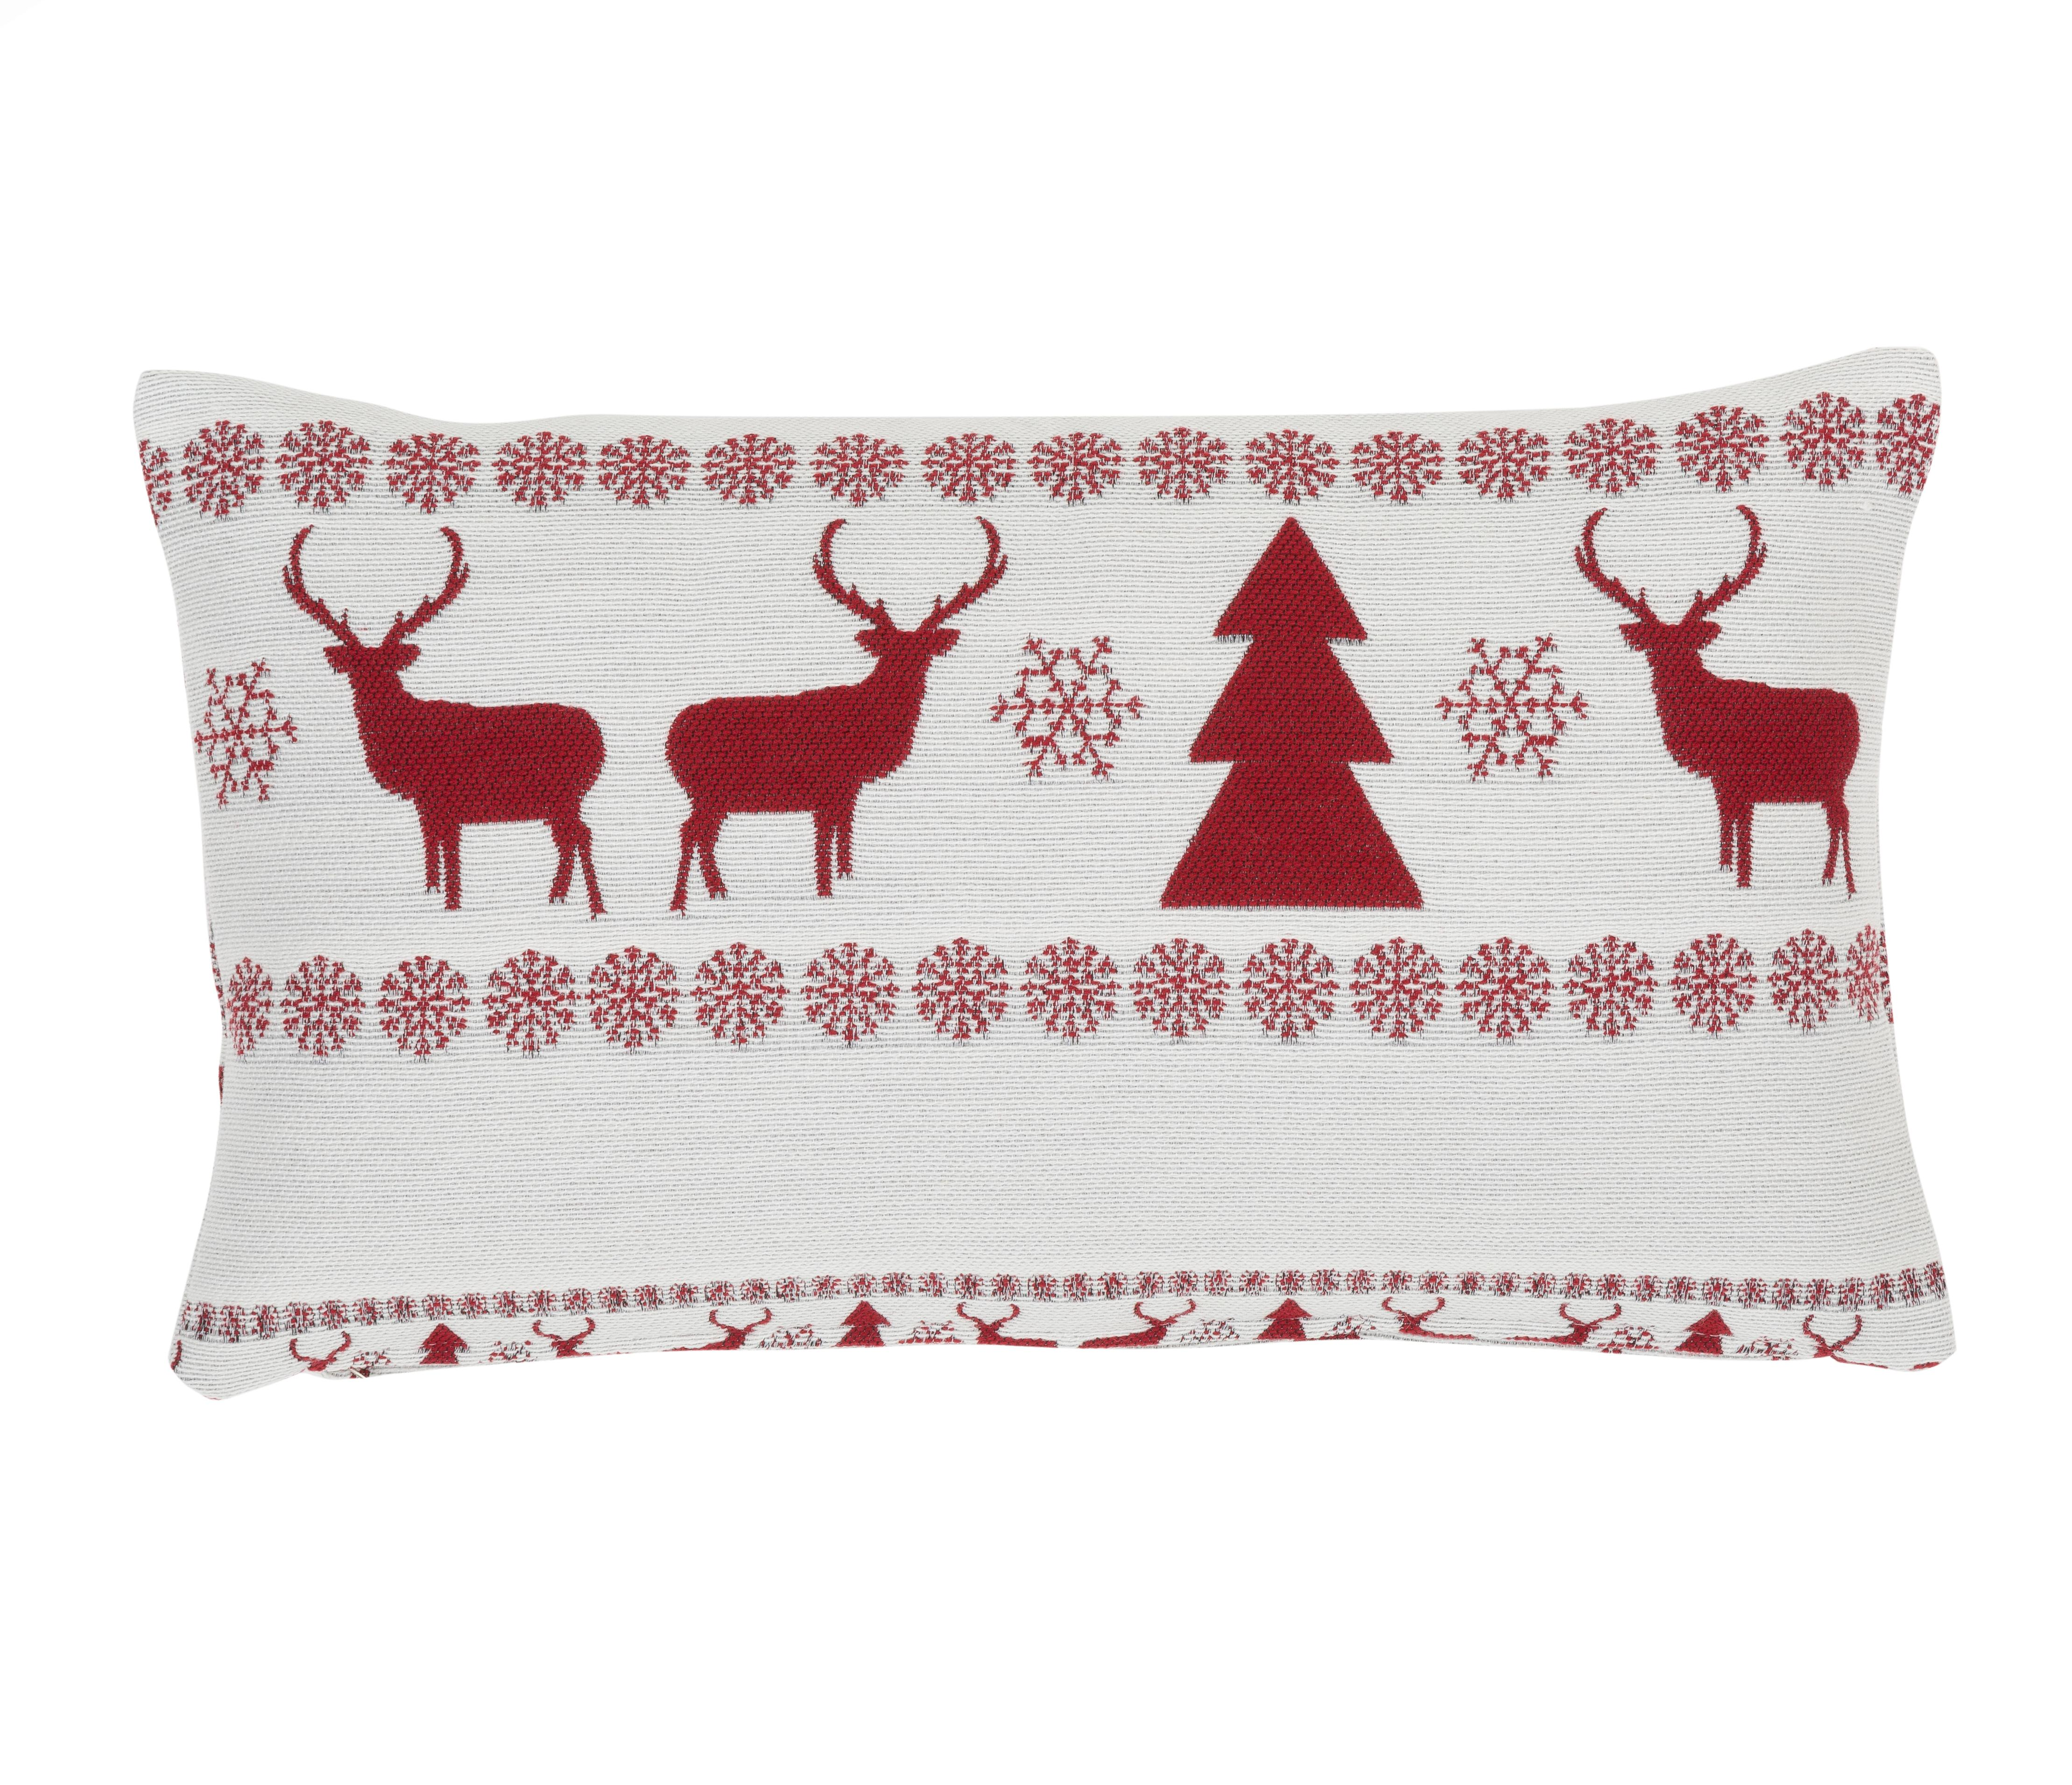 Kussenhoes Nordic Winter, 56% polyester, 31% acryl, 13% wol, Crèmewit, rood, 30 x 50 cm